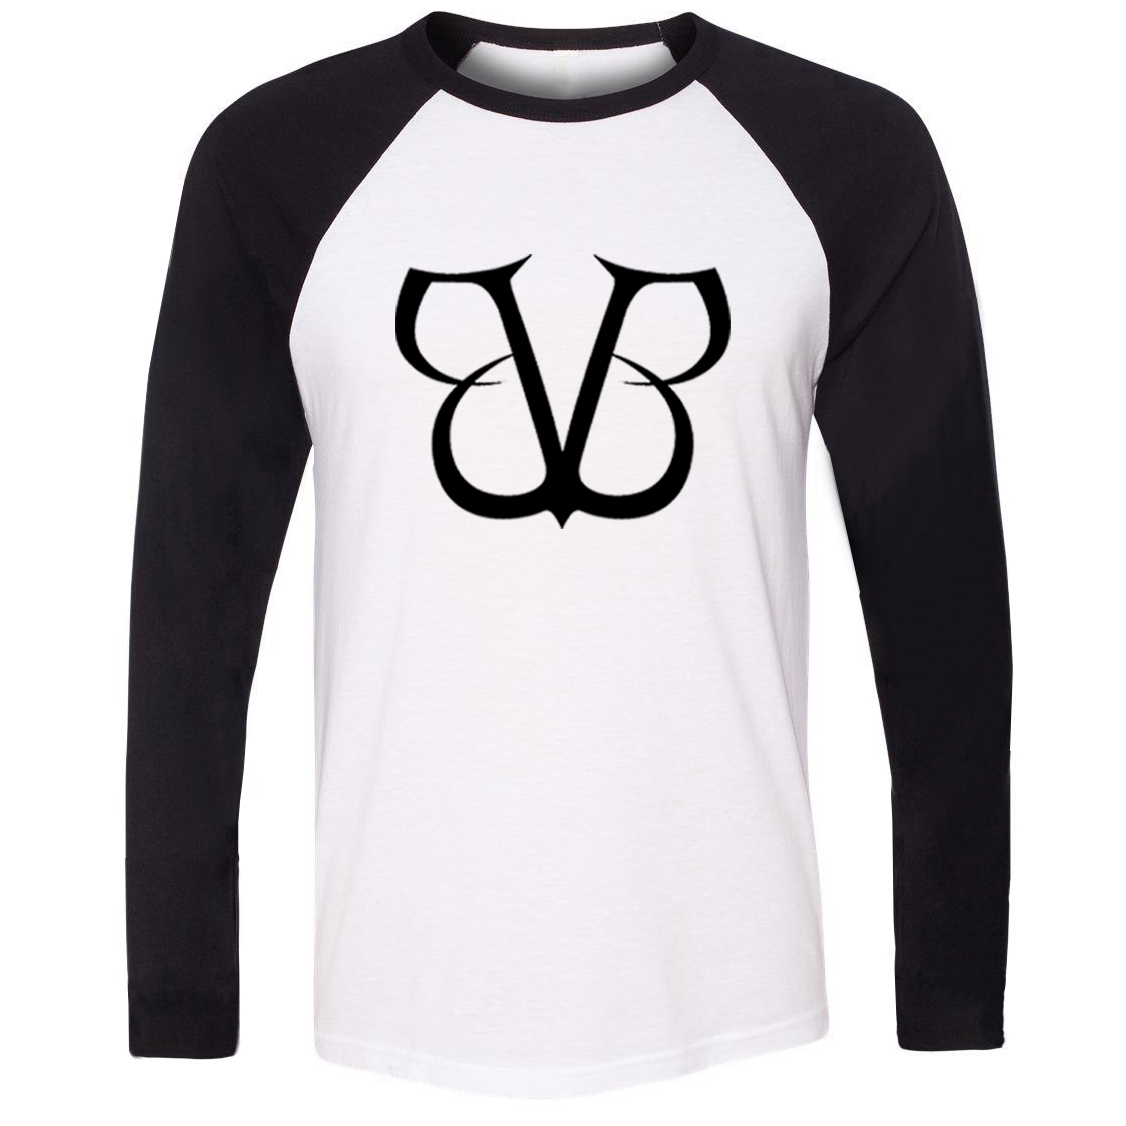 innovative design 4e439 0ce26 US $11.19 44% OFF|Unisex T shirt Black Veil Brides BVB Music Band Andy Jake  Jinxx Ashley Christian Pattern Long Sleeve Men T shirt Casual Tee Tops-in  ...